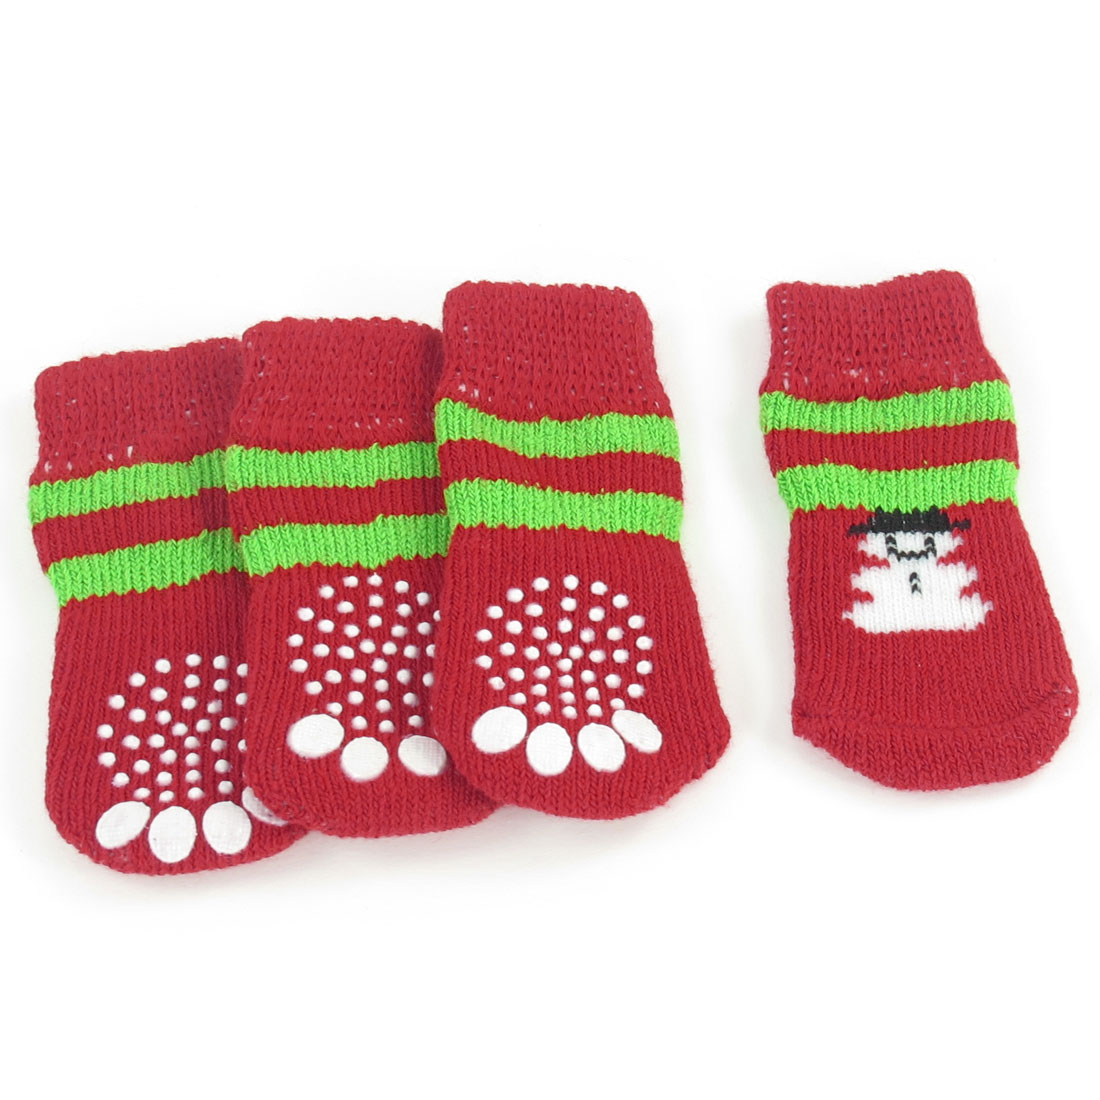 4PCS Warm Nonskid Paw Pattern Elastic Acrylic Pet Dog Doggie Puppy Socks Szie M